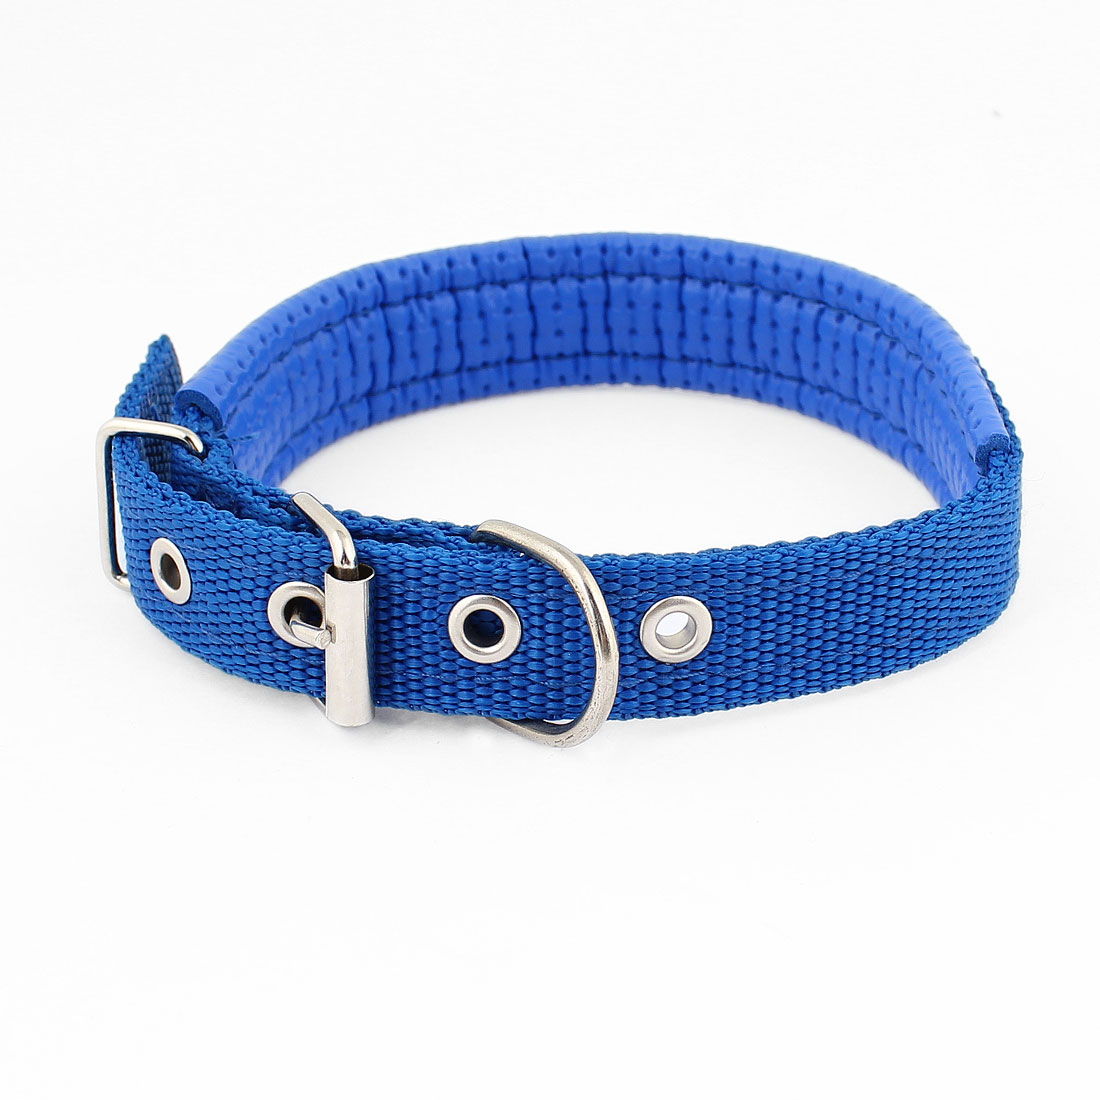 Blue Faux Leather 2.5cm Width Adjustable Pet Cat Dog Doggy Puppy Collar Rope